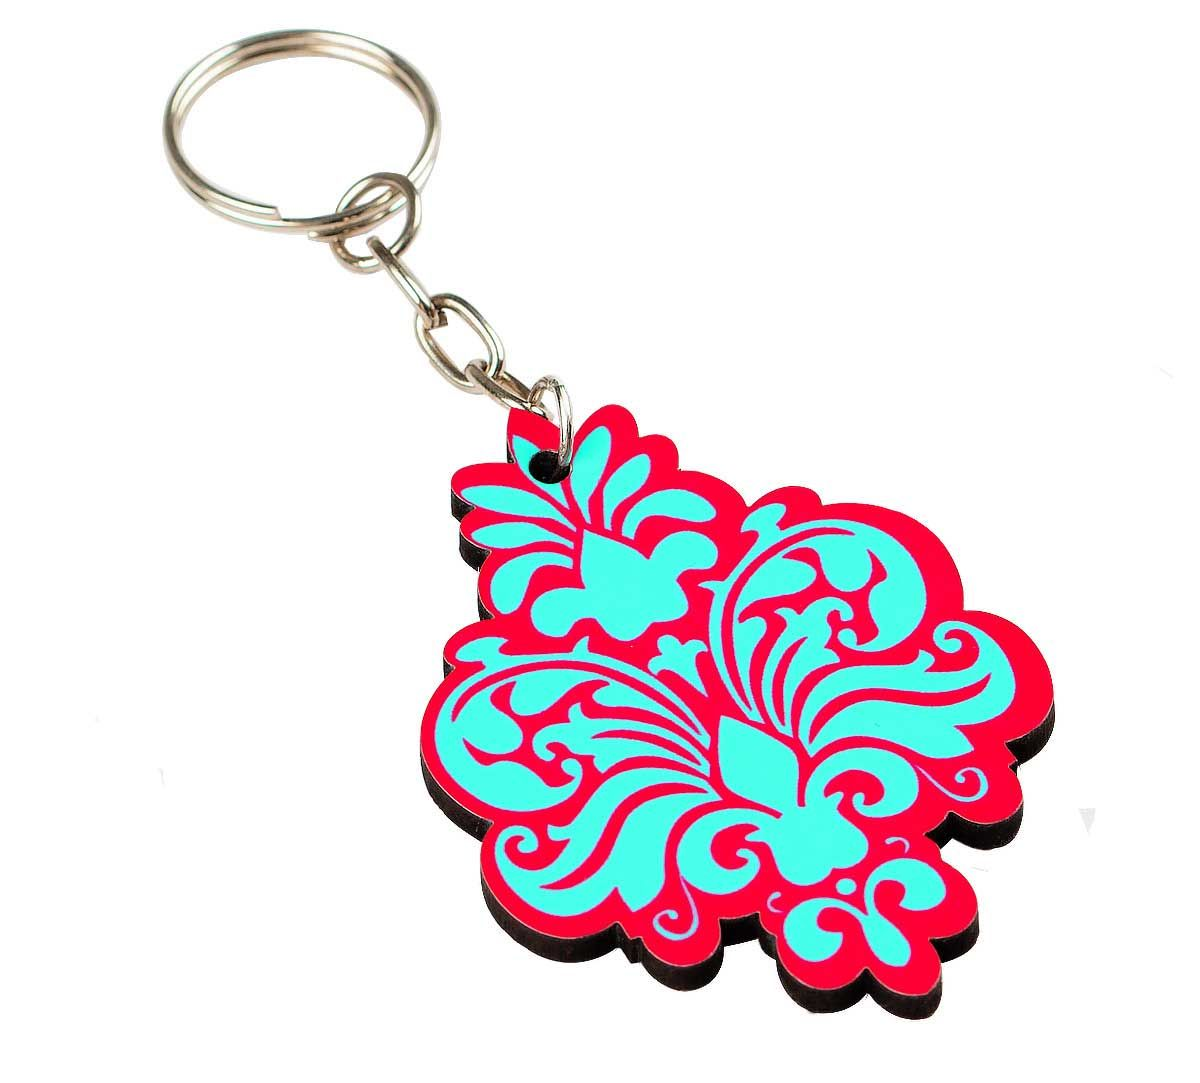 Floral Blossom Keychain